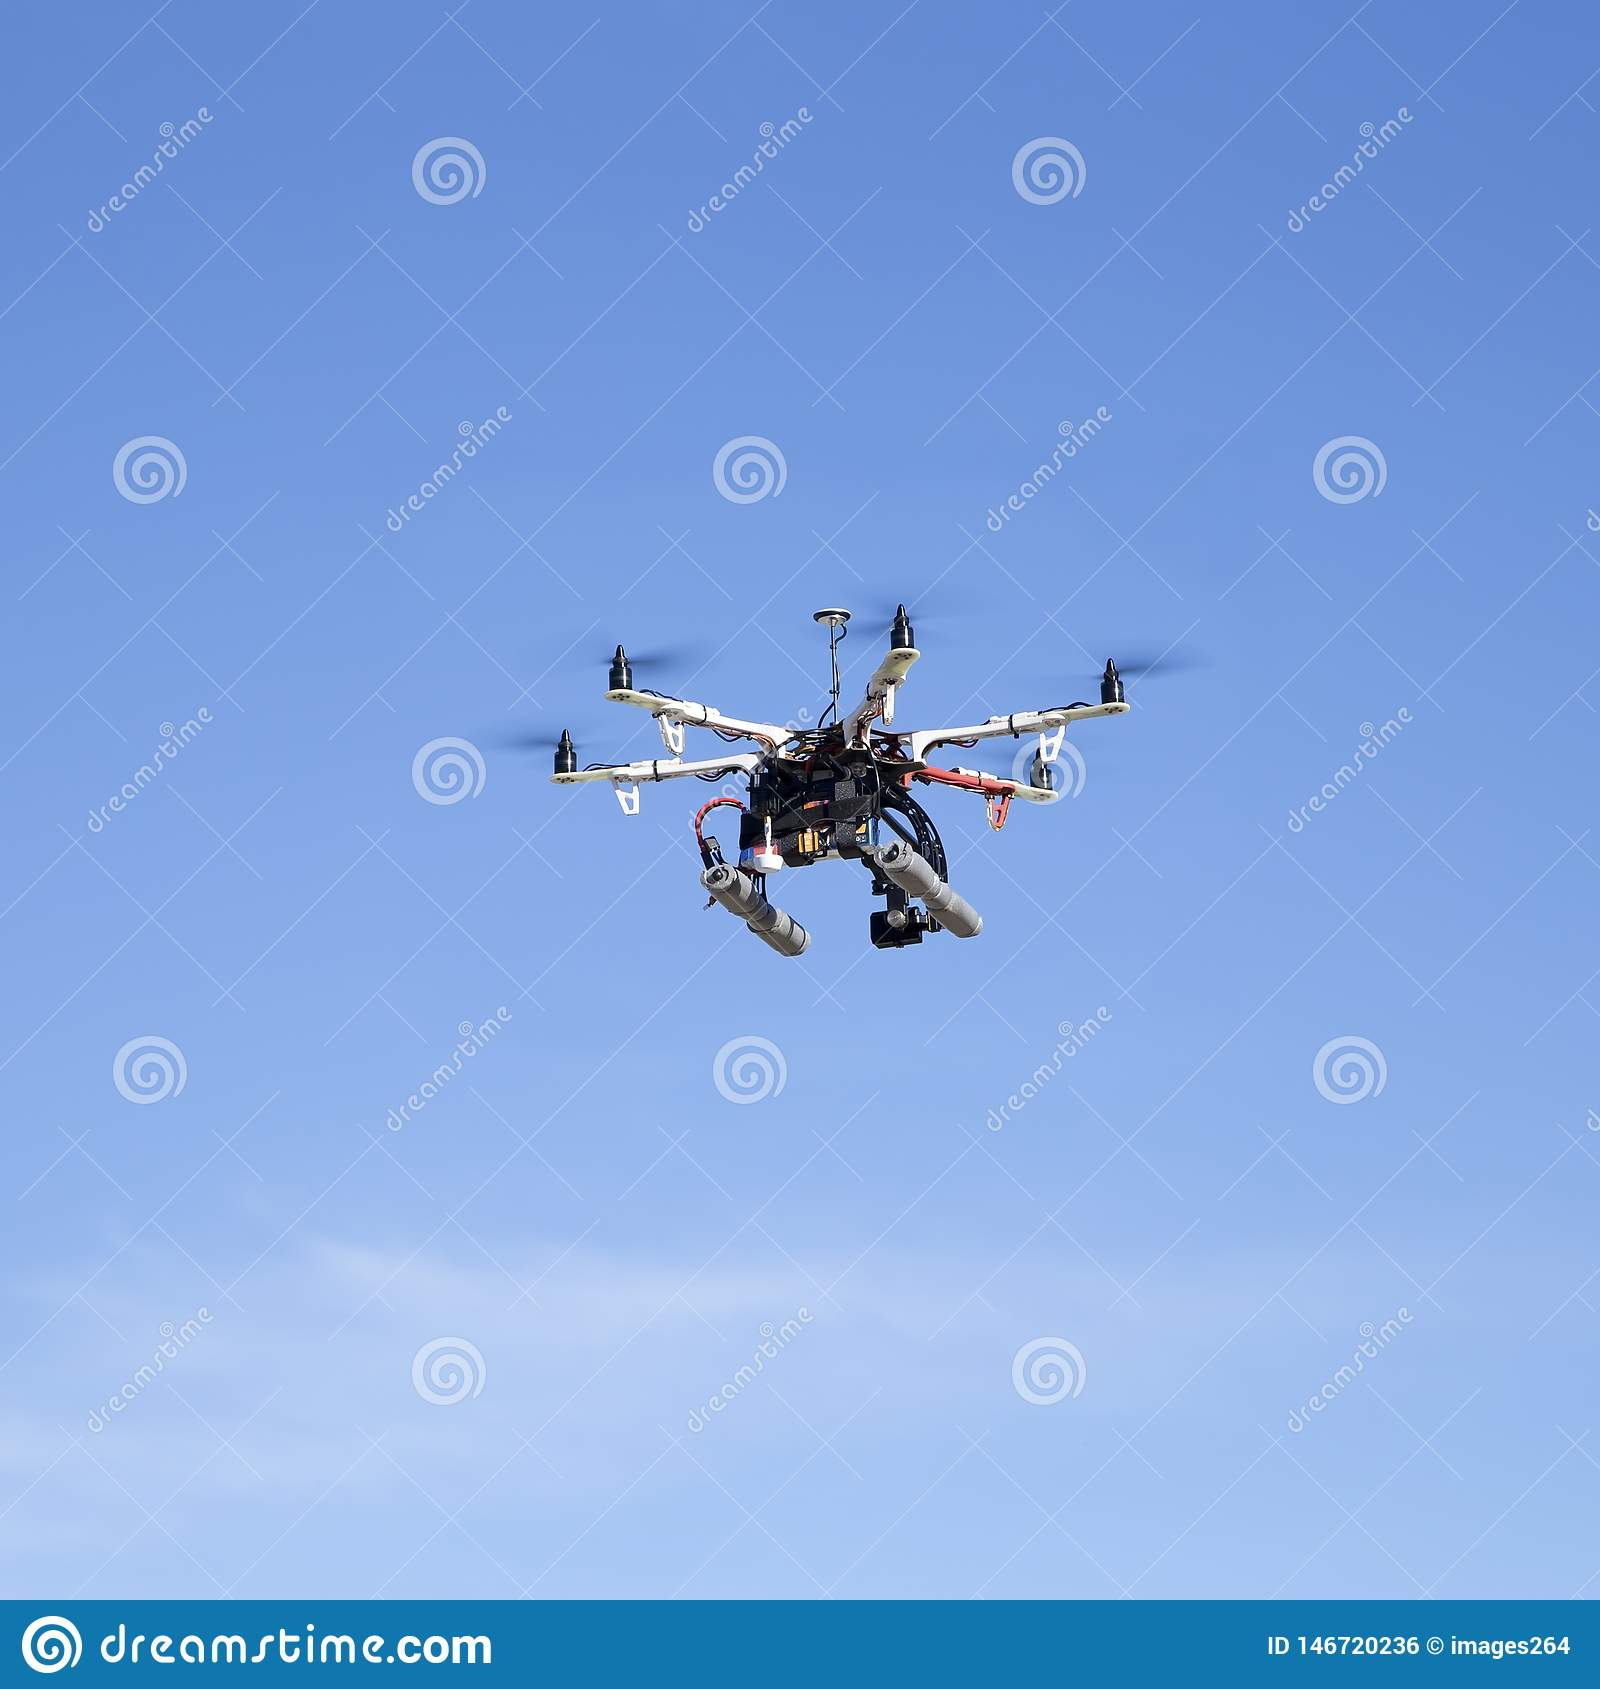 Octacopter drone flying